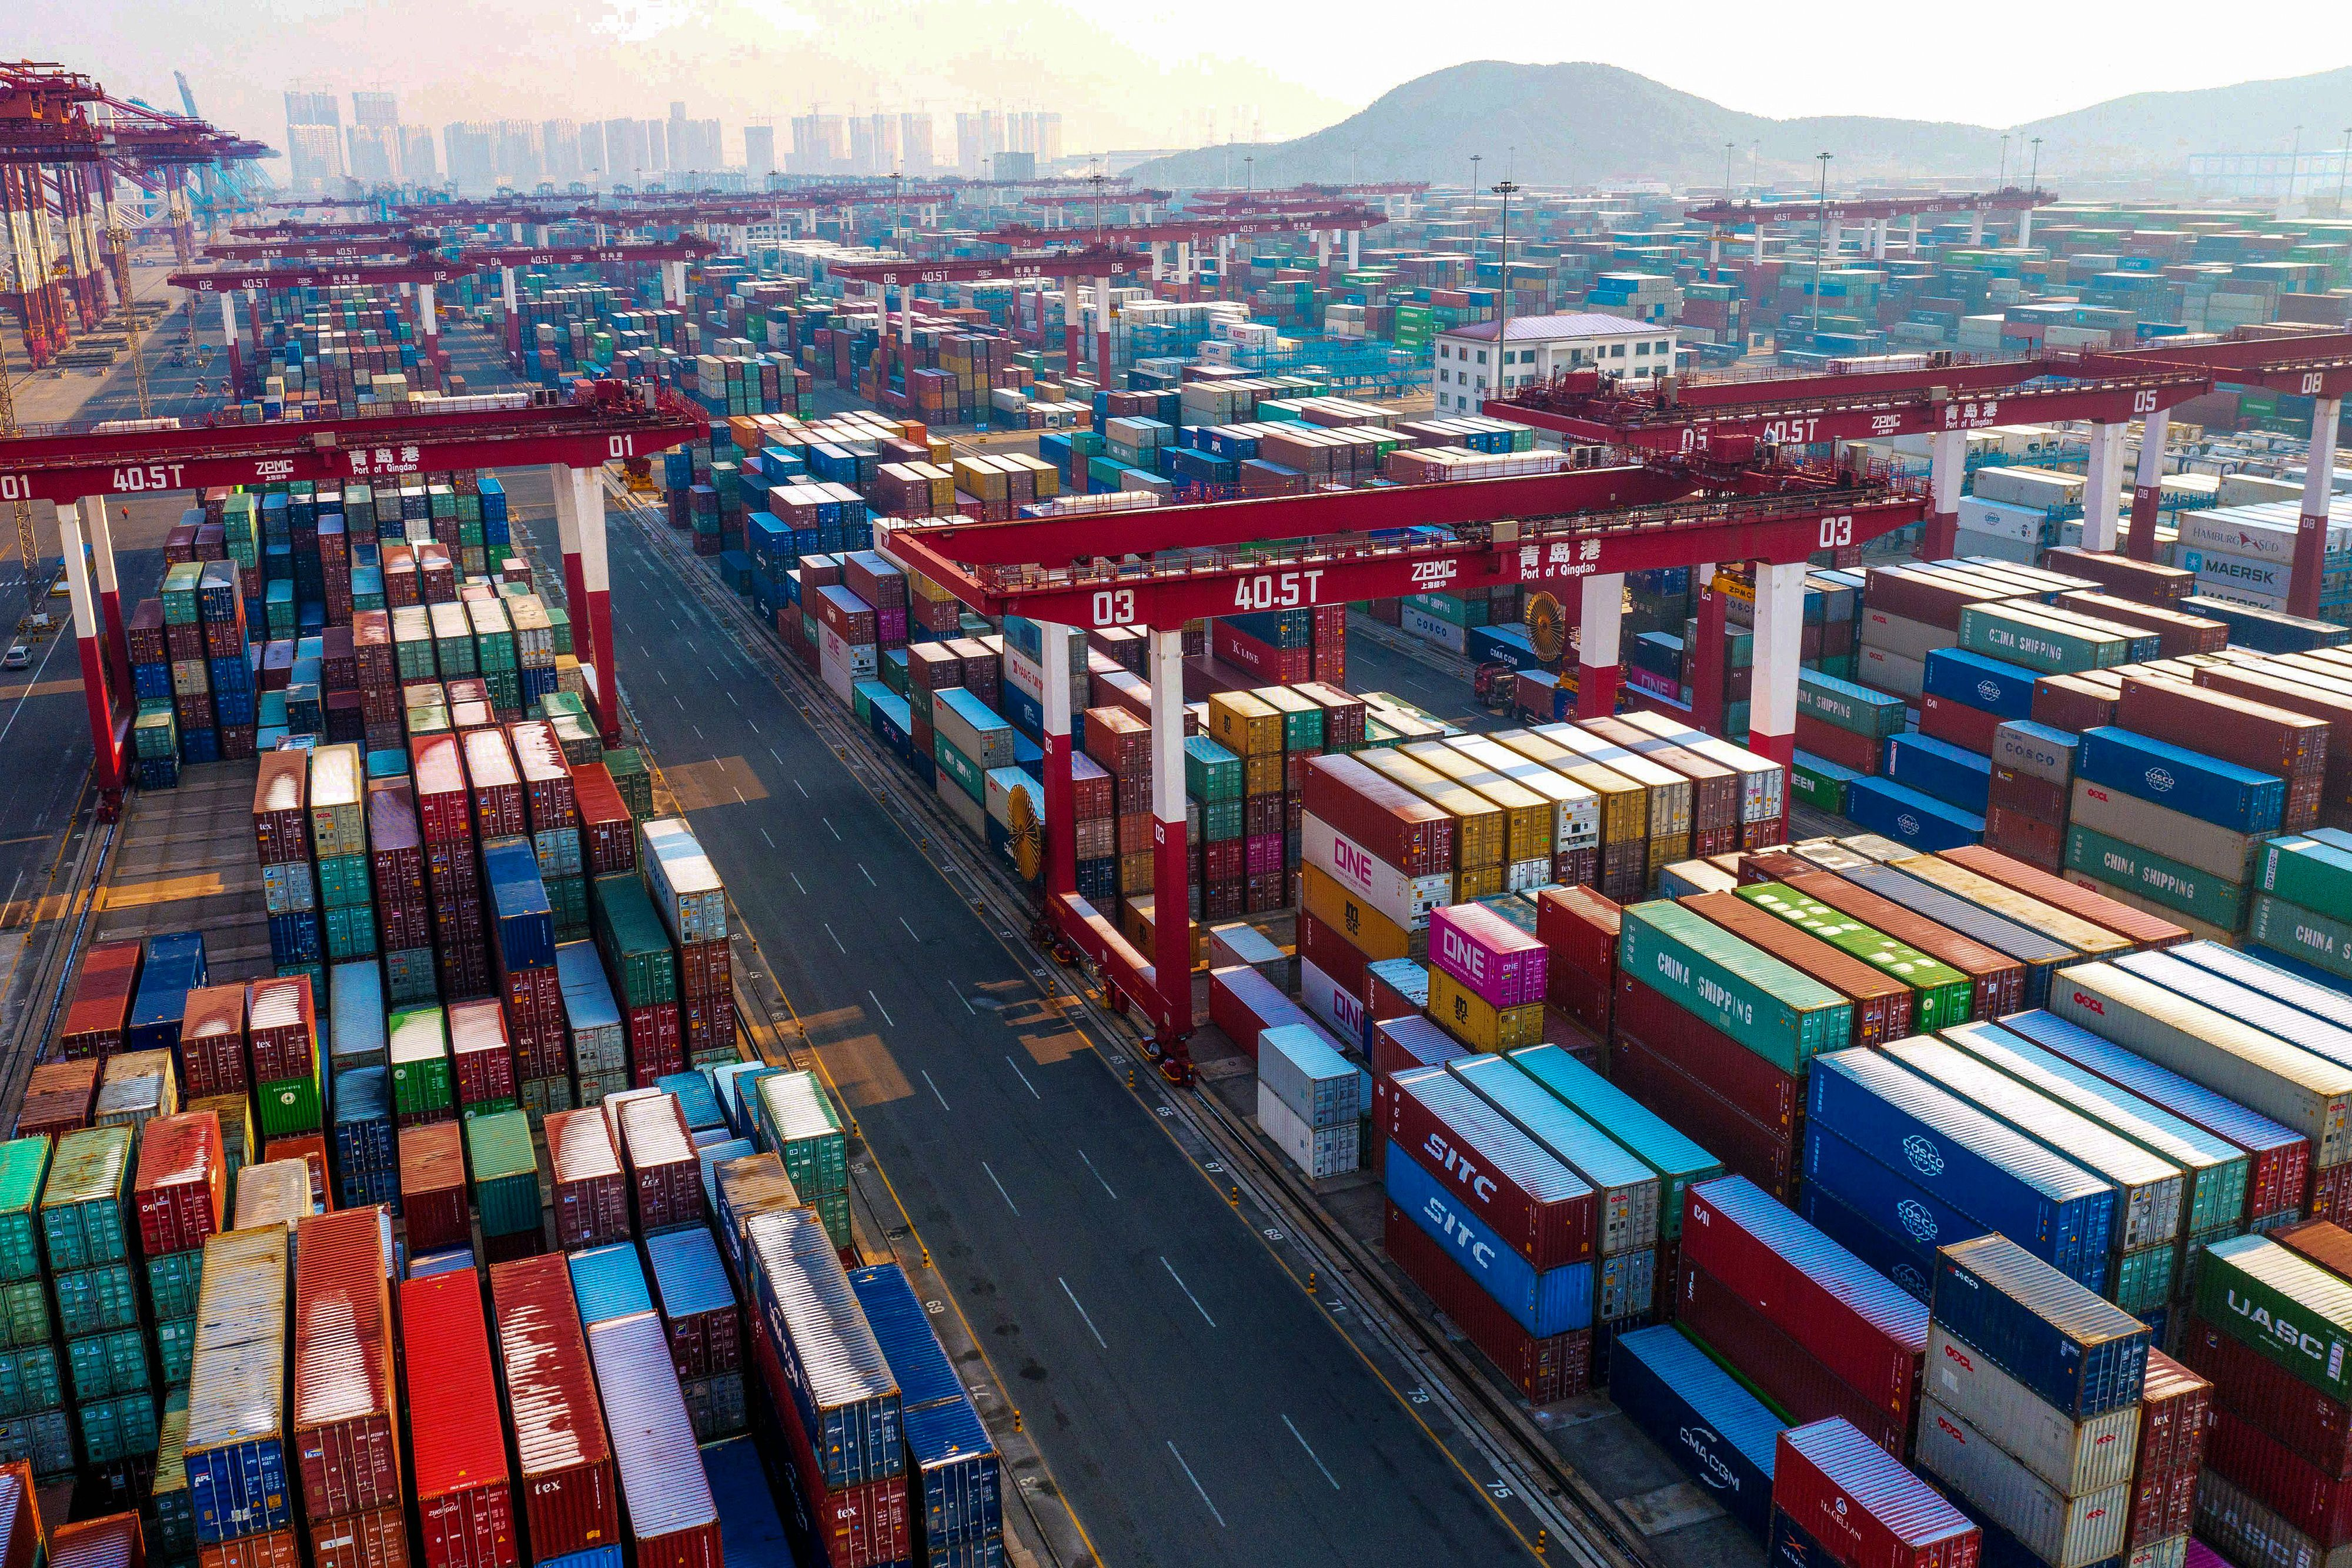 Containers are seen stacked at a port in Qingdao in China's eastern Shandong province on January 14, 2020. China's trade surplus with the United States narrowed in 2019 as the world's two biggest economies exchanged punitive tariffs in a bruising trade war